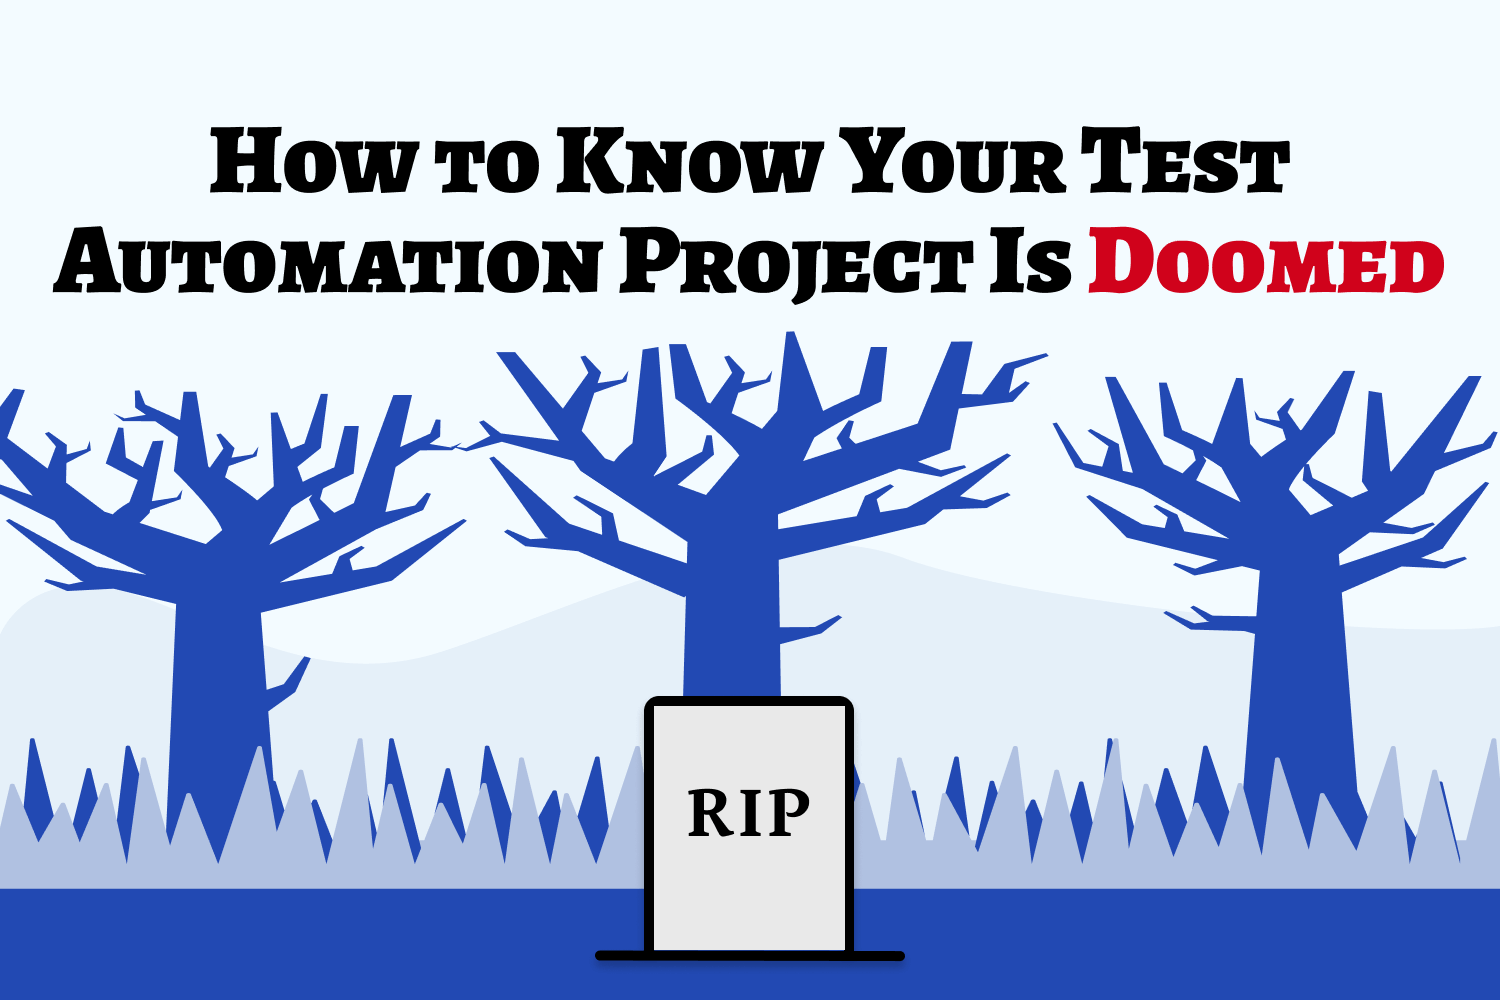 How to Know Your Test Automation Project Is Doomed